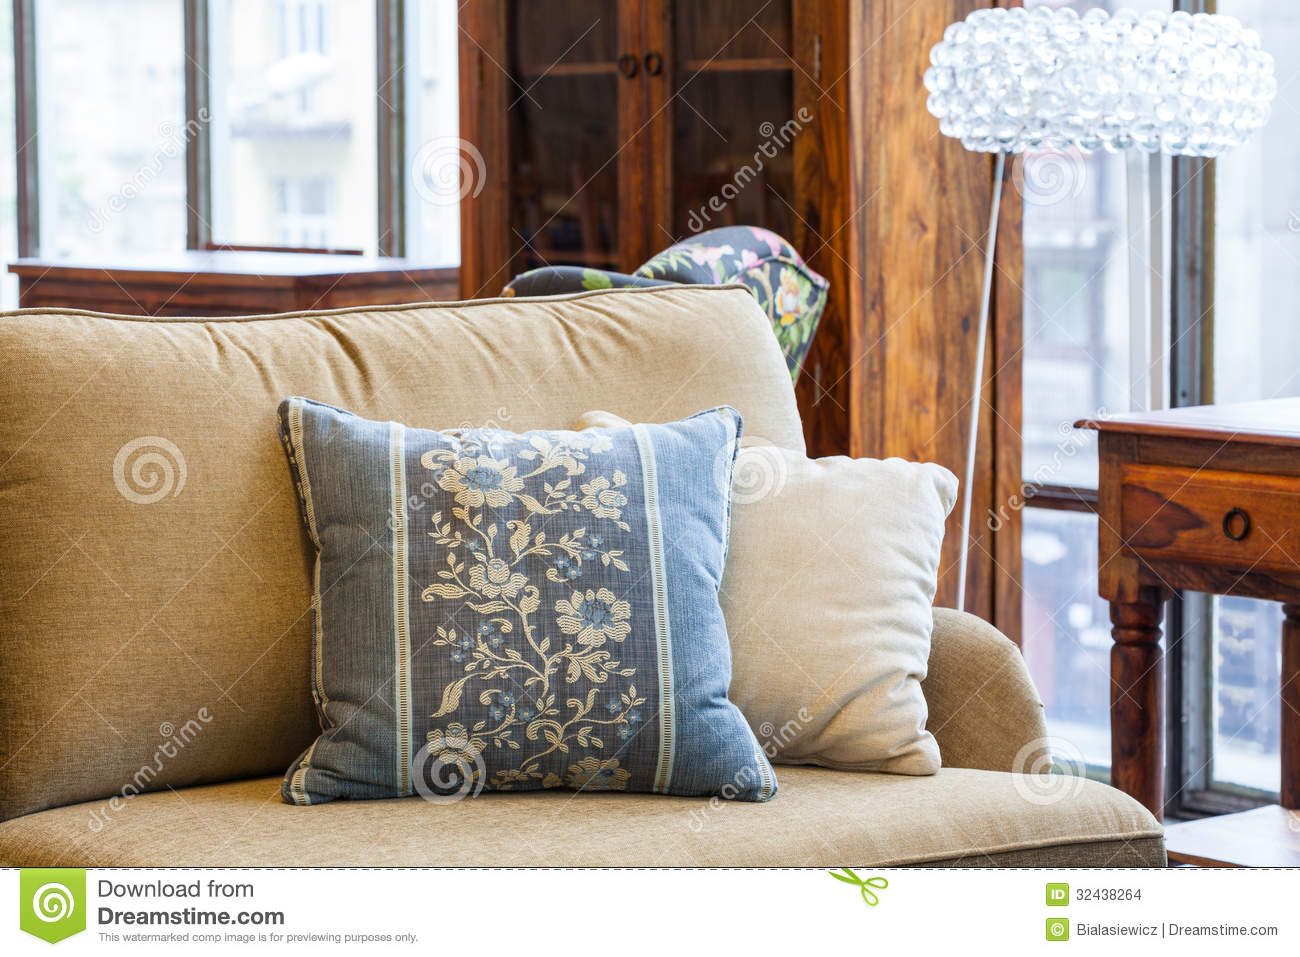 cushion ideas for light brown sofa repairing a bed frame blue and cream pillows stock images image 32438264